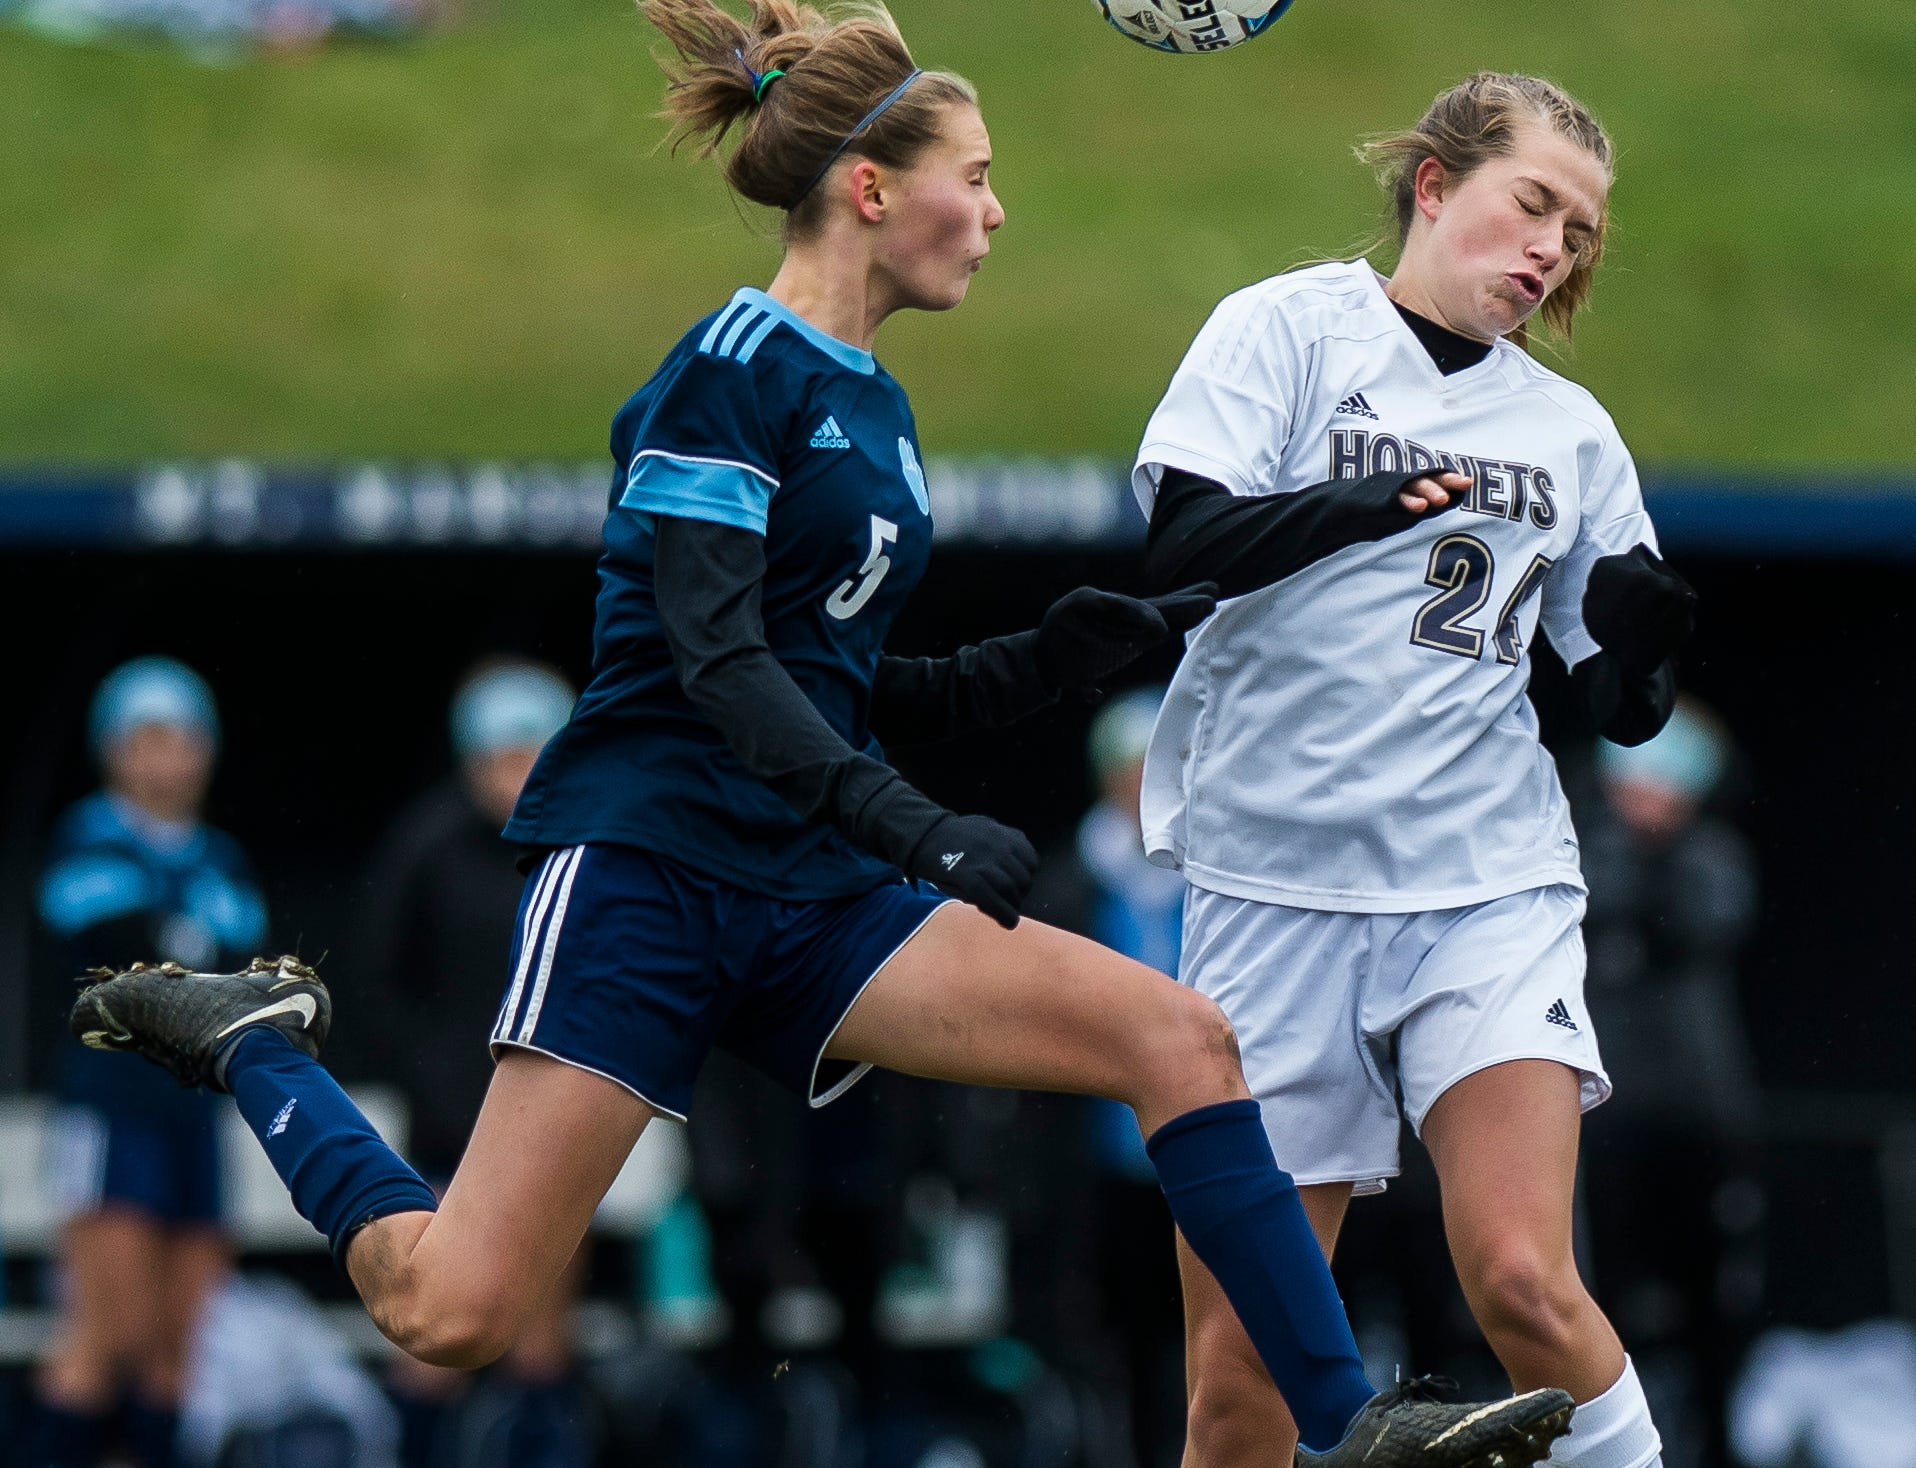 MMU #5 Skye Fitzhugh gets the headers past Essex #24 Emma Whitney during their quarter-final game in Jericho on Saturday, Oct. 27, 2018, that went into double overtime and shootout. Essex took the penalty kick contest to win, 4-1.